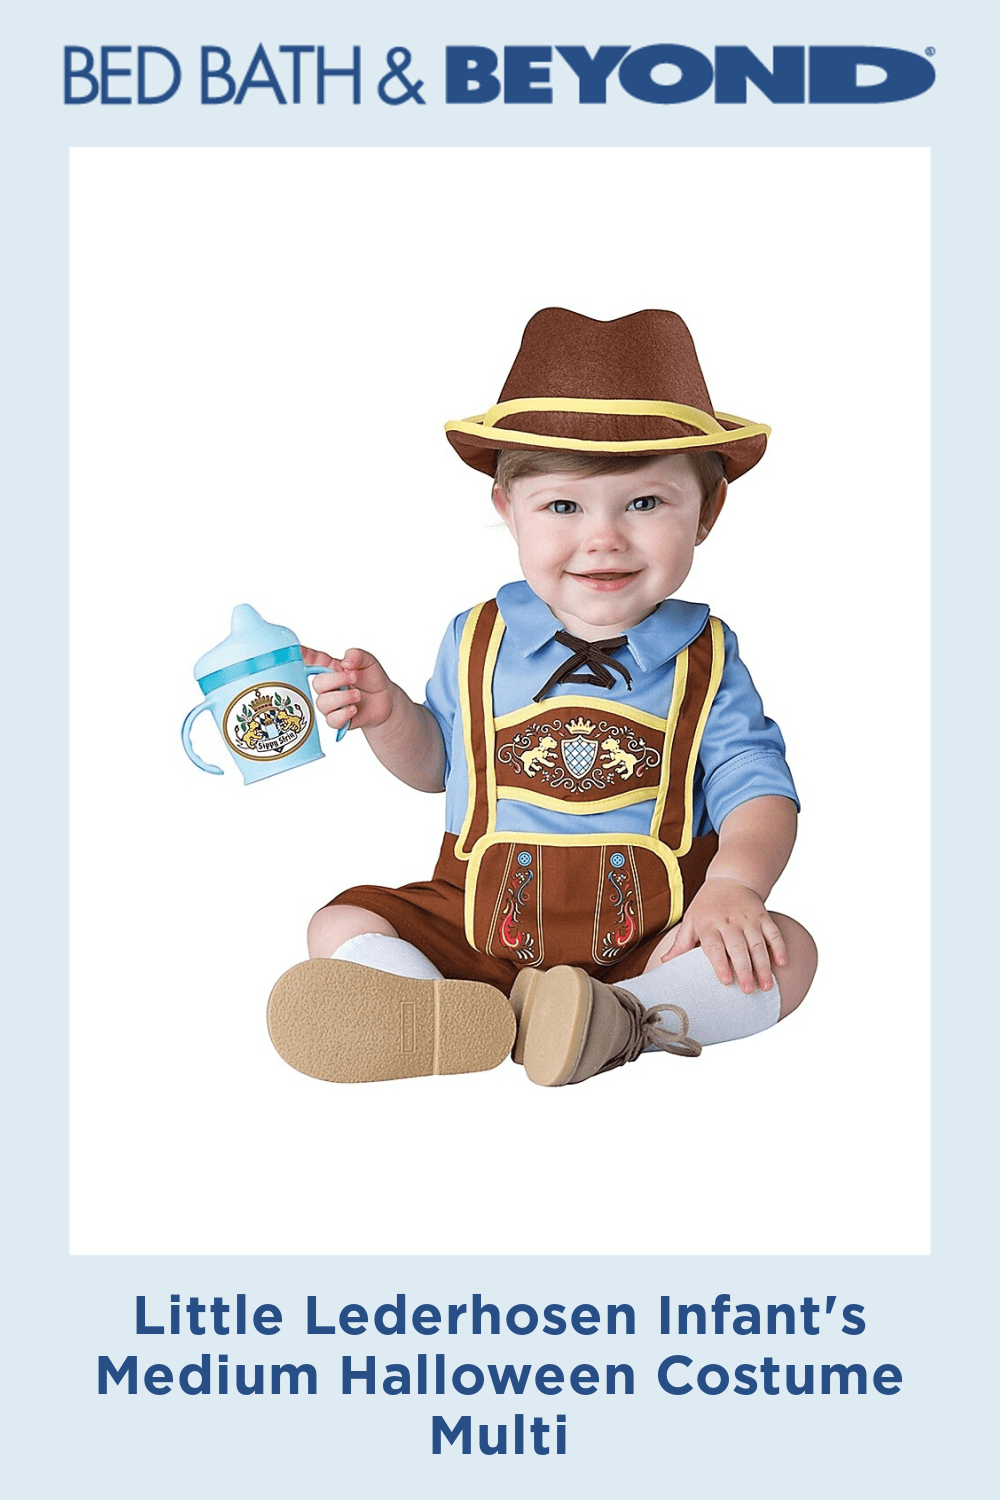 Little Lederhosen Infant's Medium Halloween Costume Multi